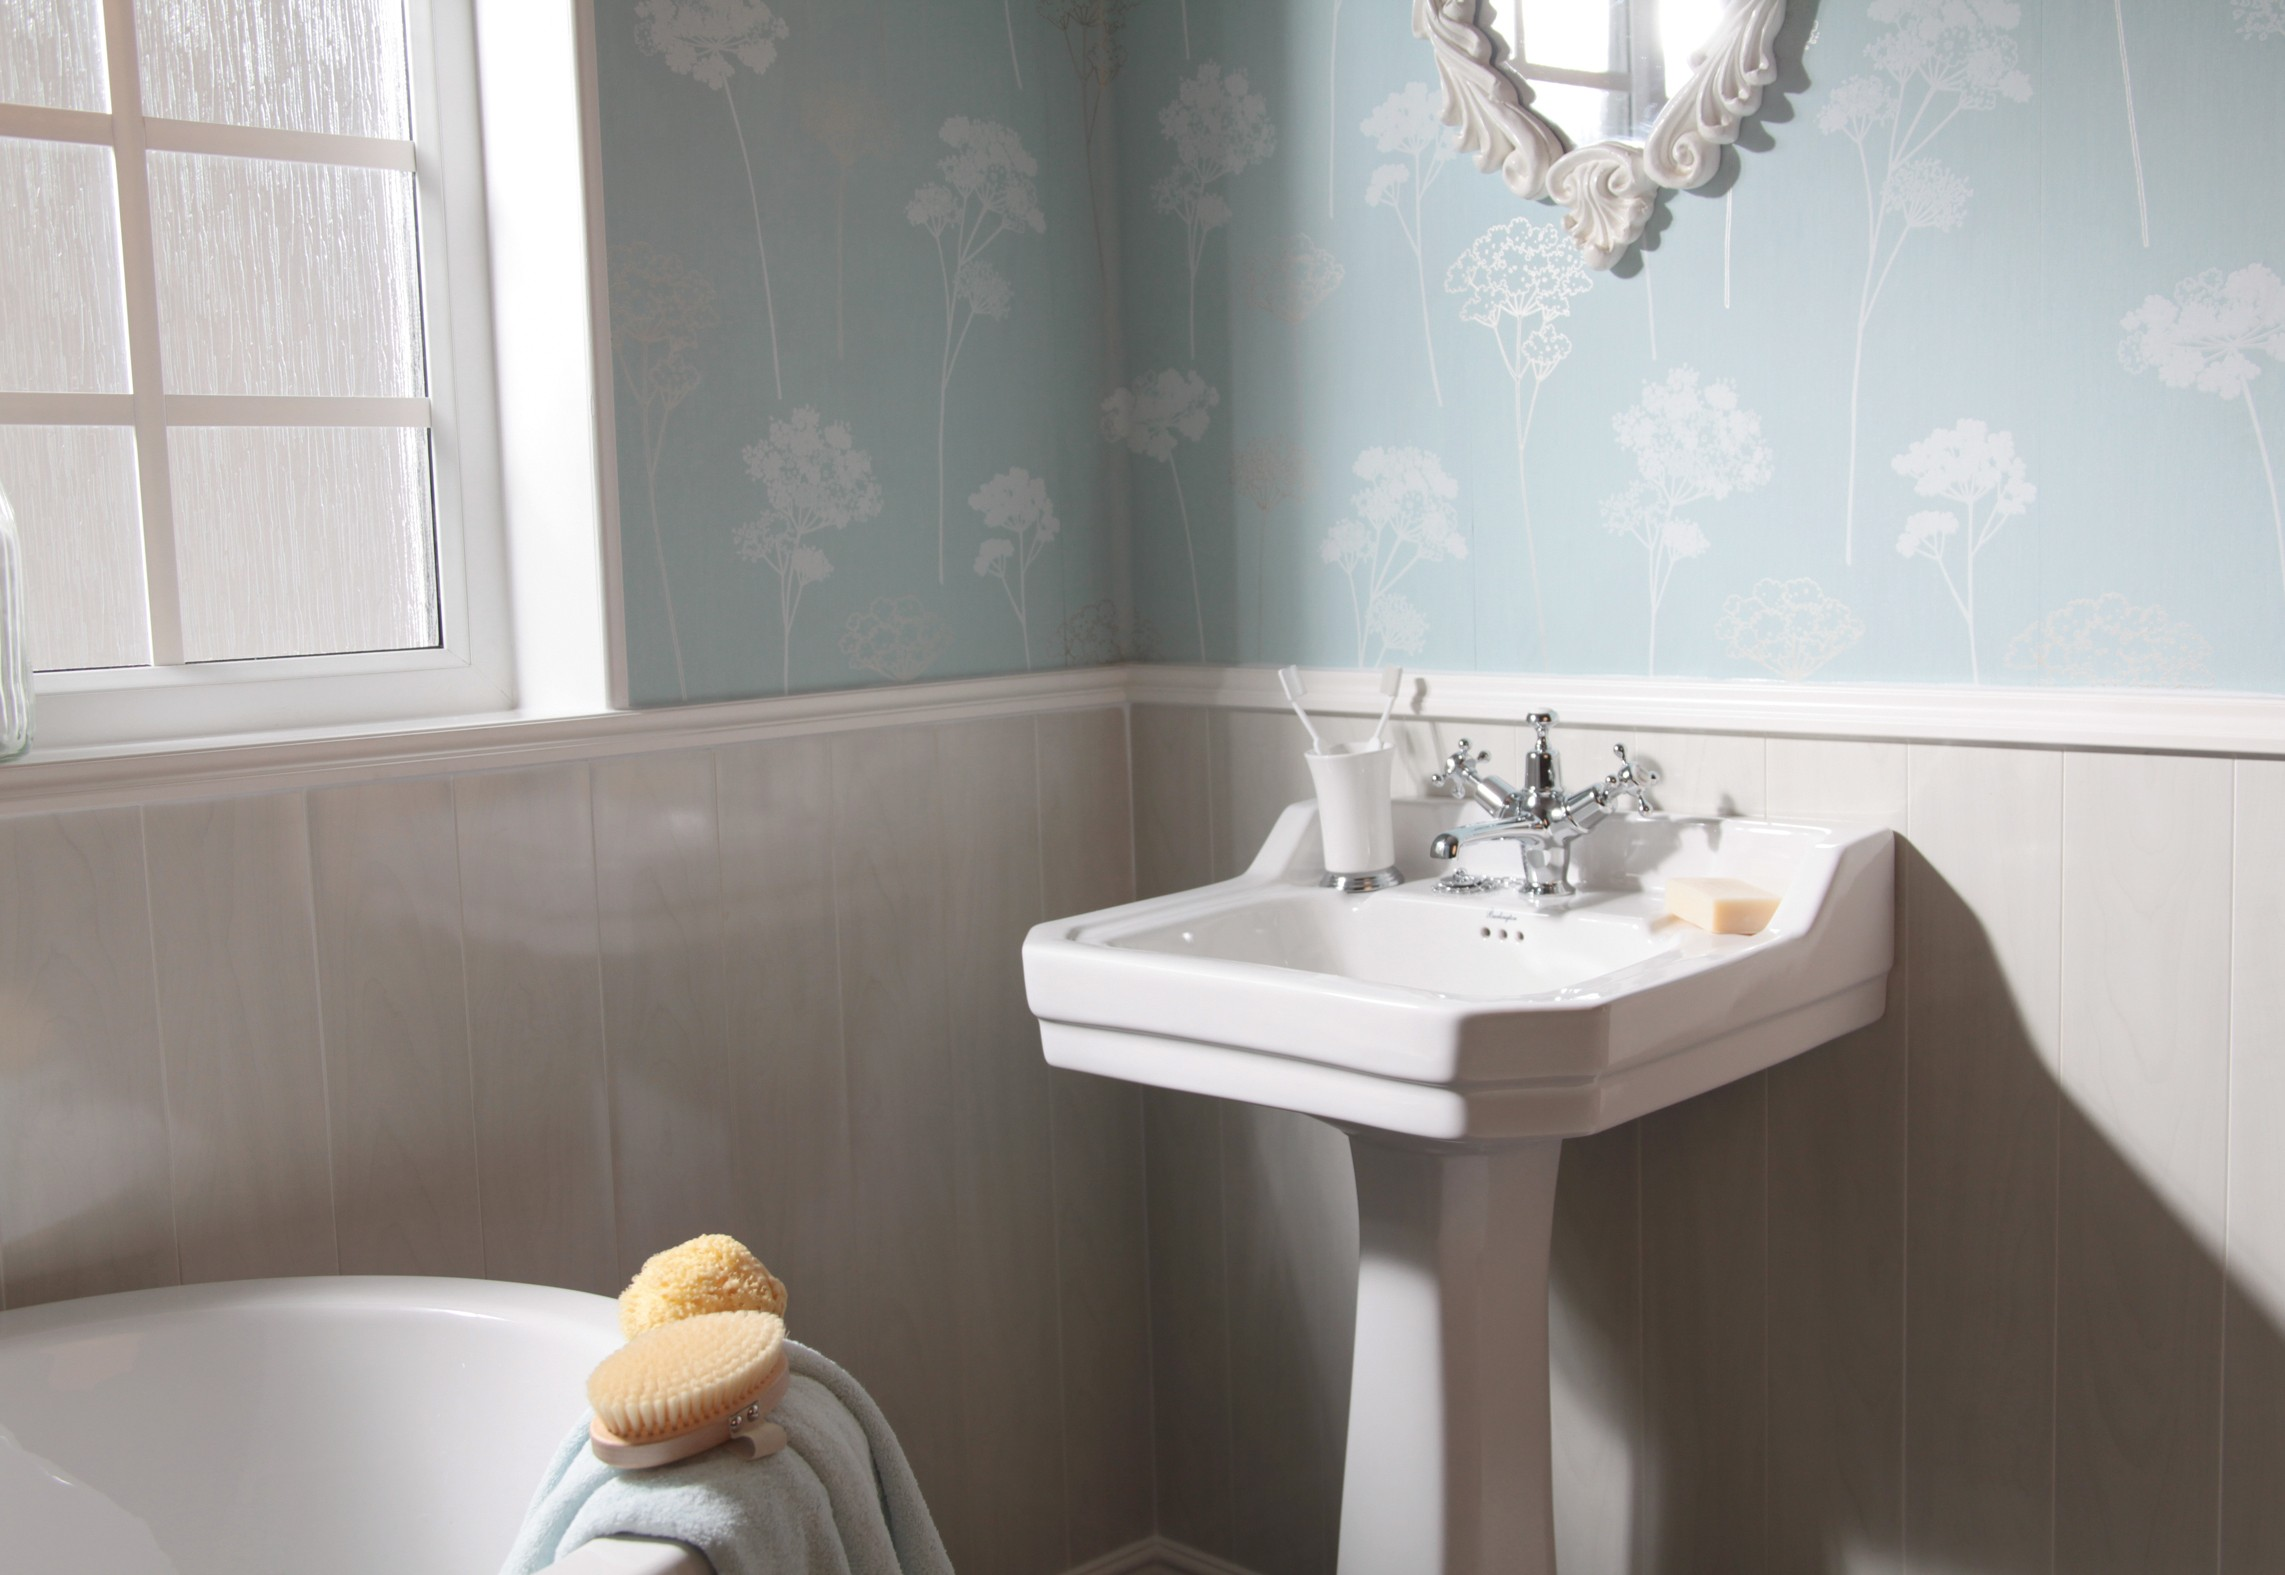 How To Use Wall Panels In Traditional, Paneling For Bathroom Walls